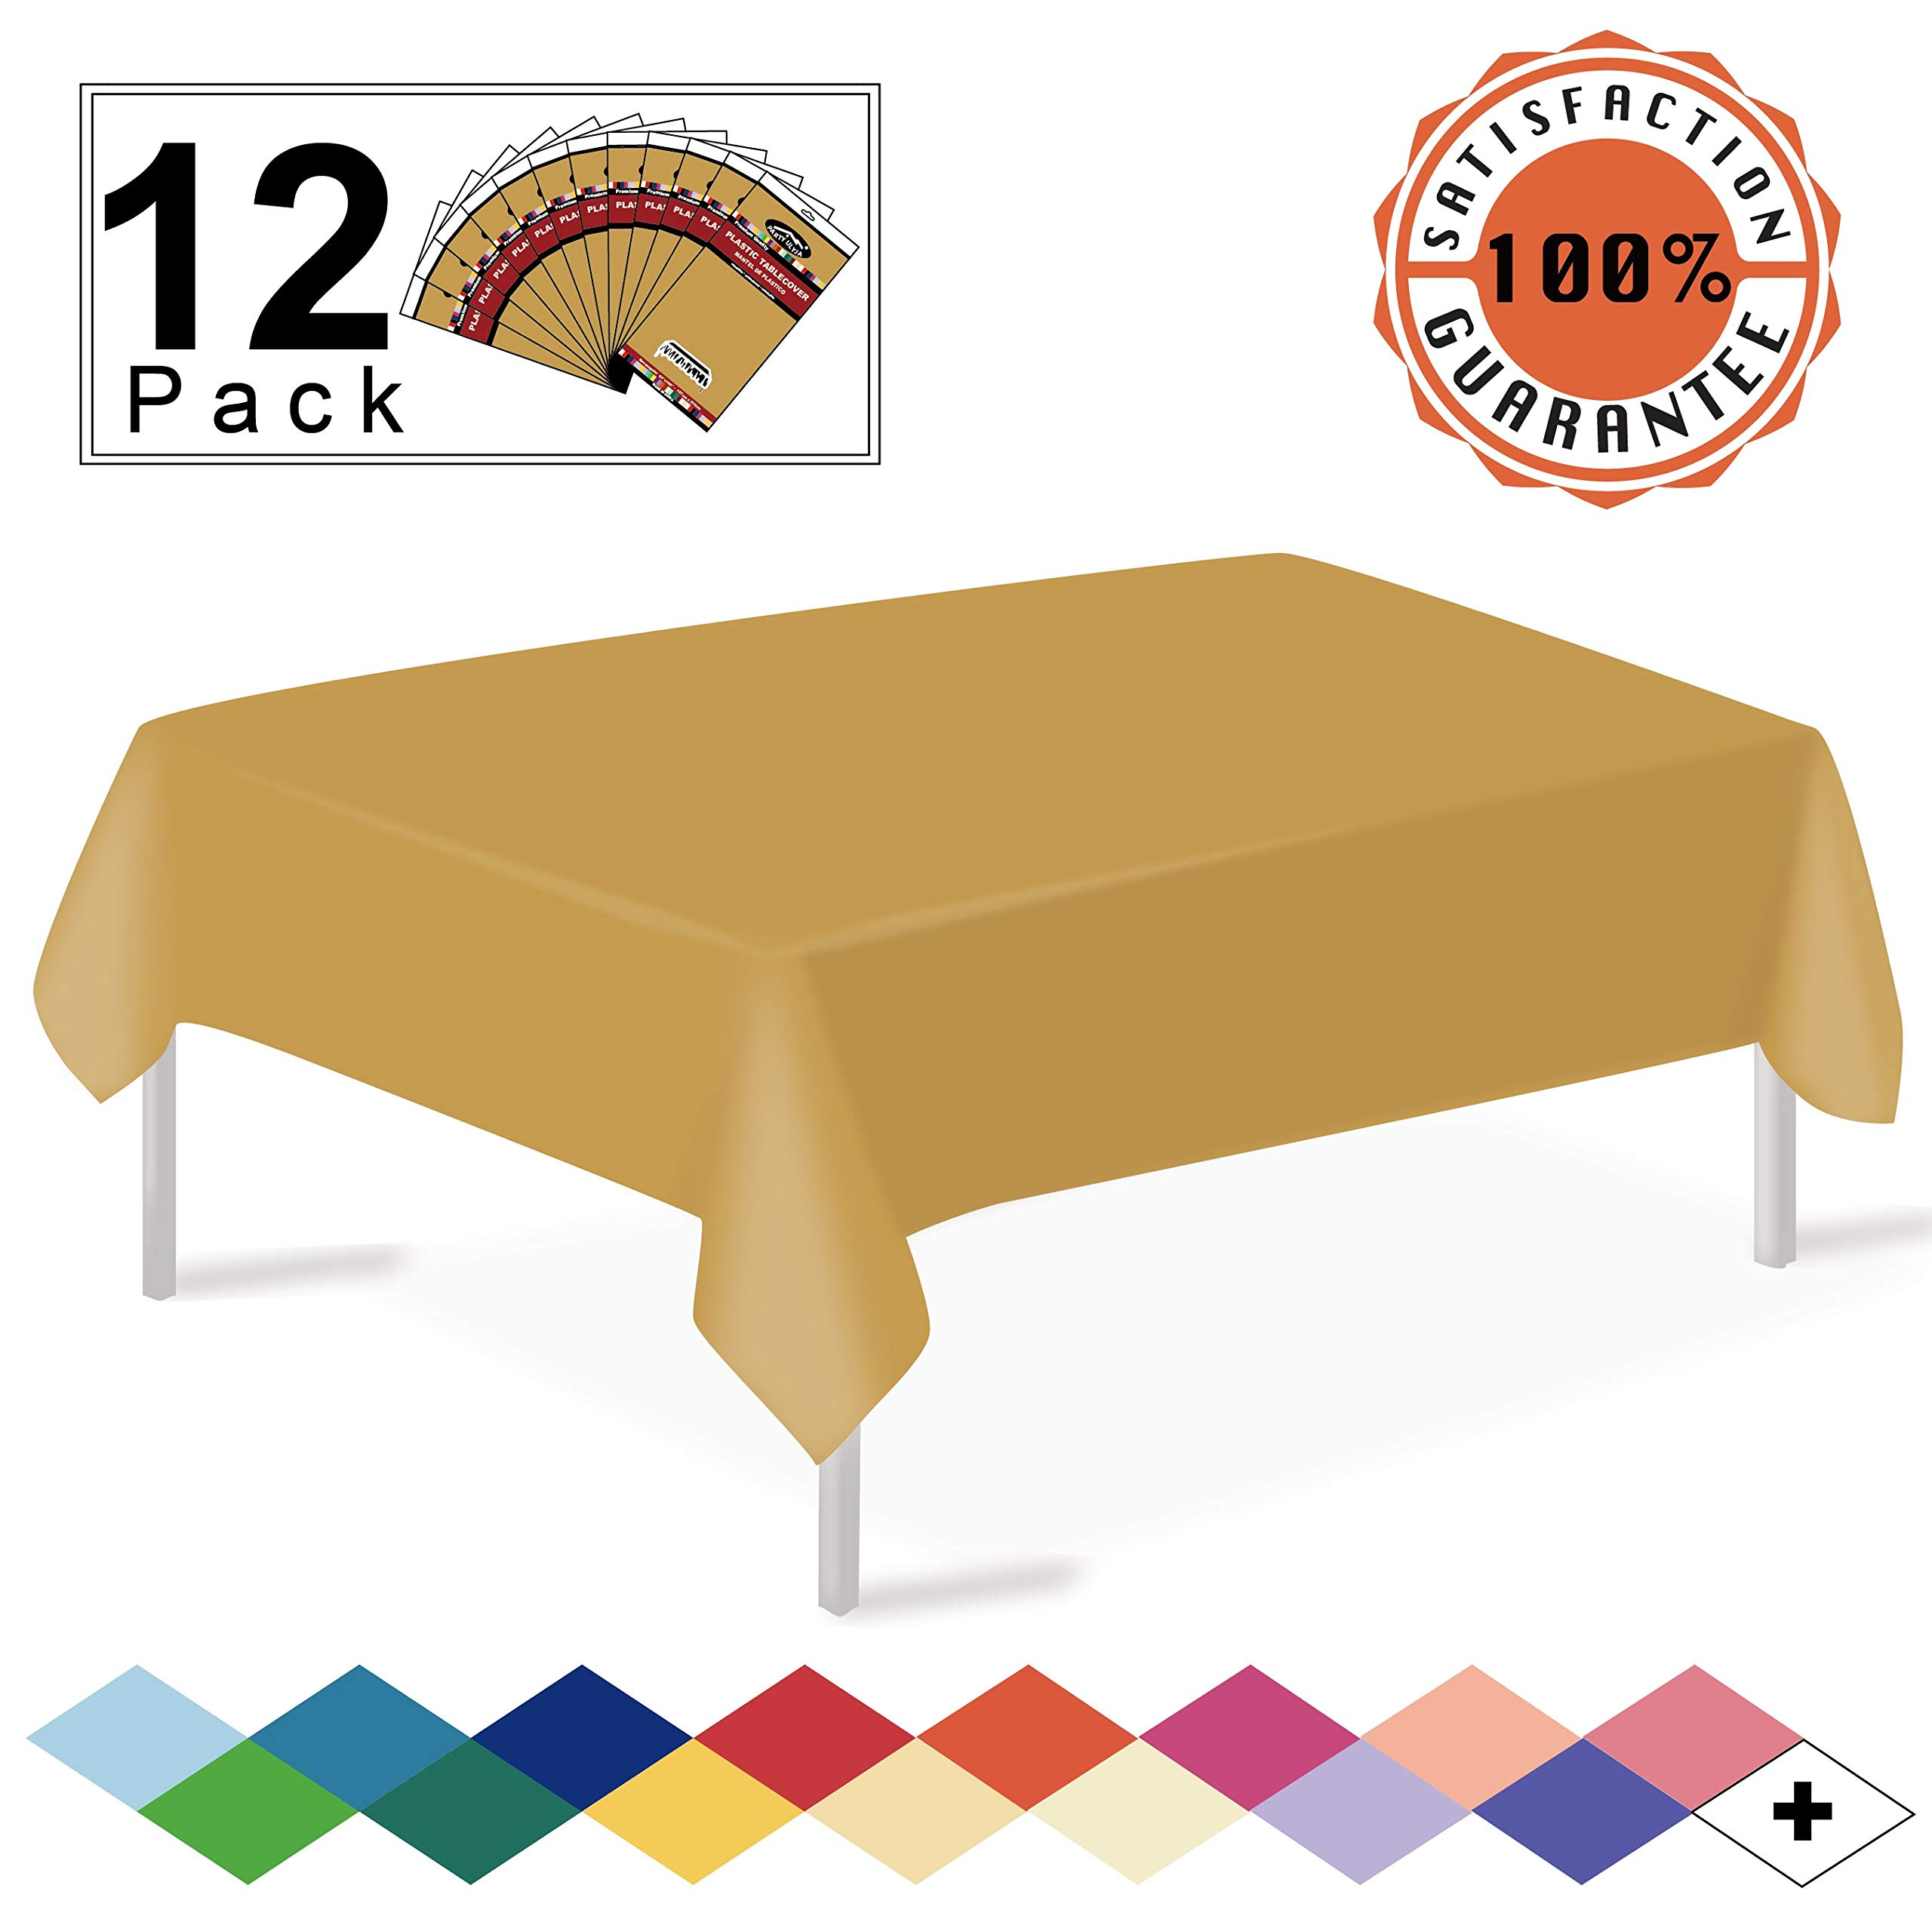 Gold Plastic Tablecloths Disposable Table Covers 12 Pack Premium 54 x 108 Inches Table Cloths for Rectangle Tables up to 8 Feet and for Picnic Birthday Thanksgiving any Events Occasions, PEVA Material by party ulyja